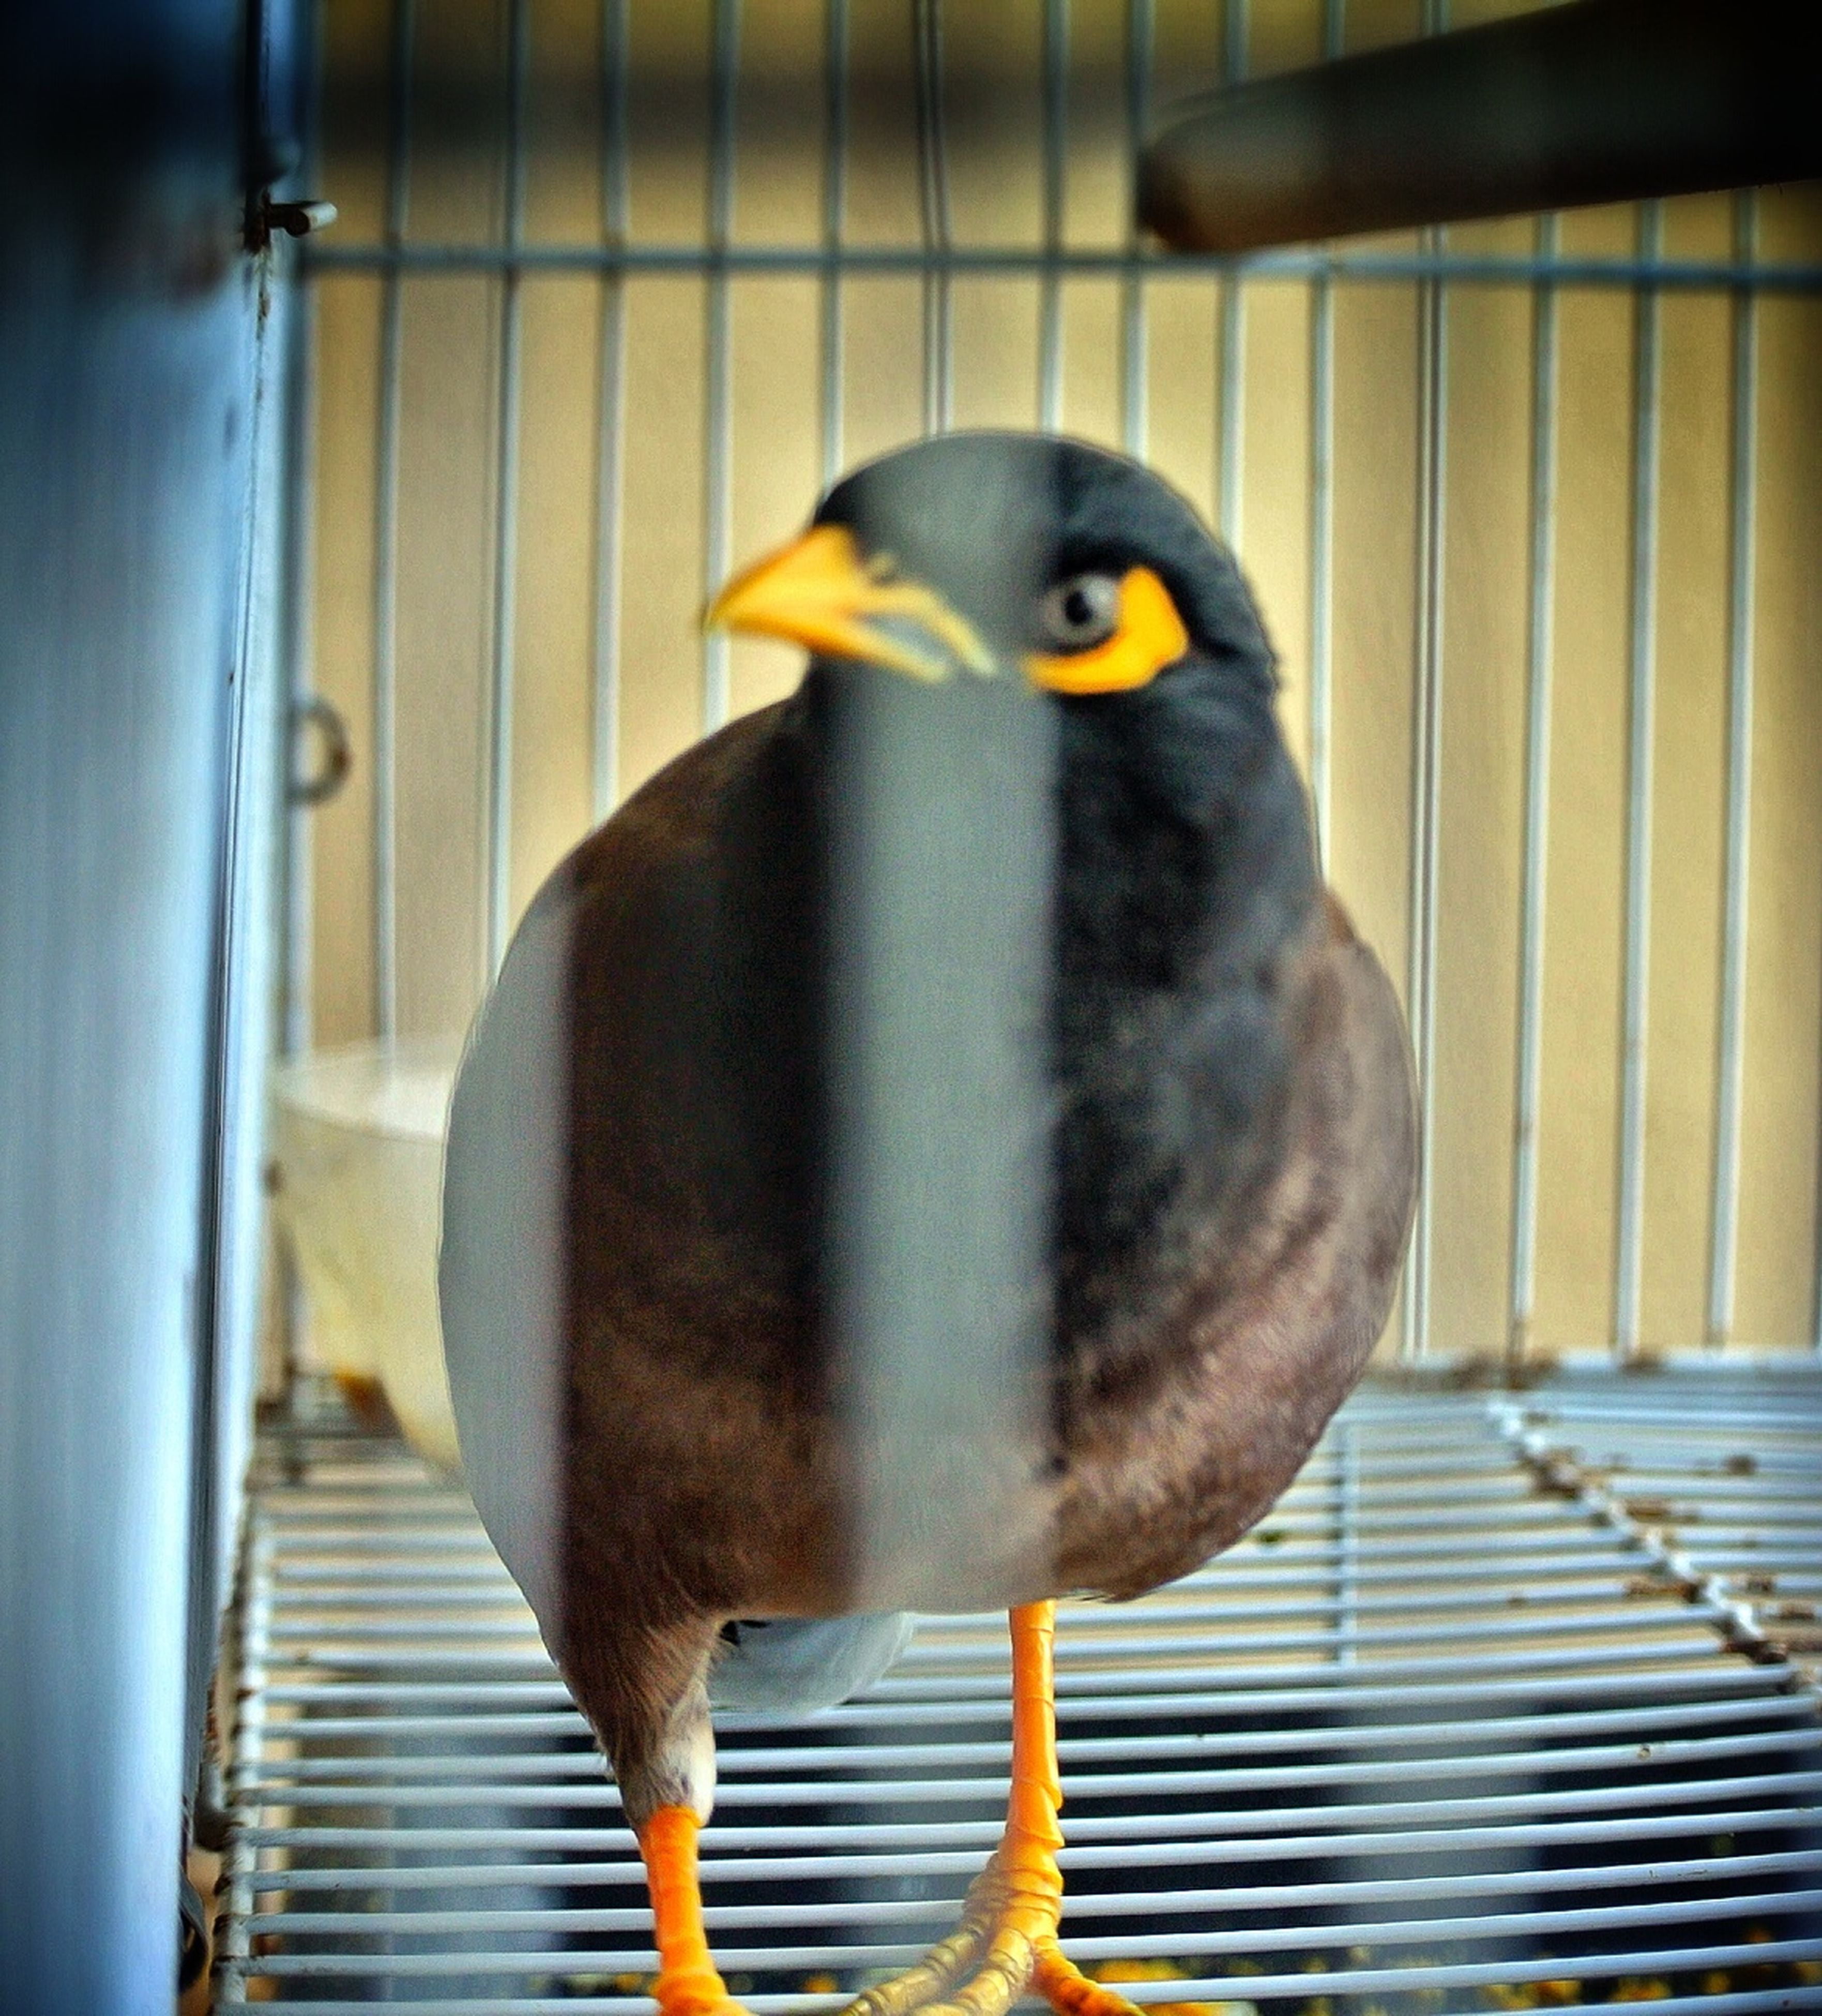 bird, animal themes, one animal, animals in the wild, beak, perching, wildlife, close-up, focus on foreground, parrot, cage, pigeon, bird of prey, birdcage, animals in captivity, front view, outdoors, zoology, nature, animal head